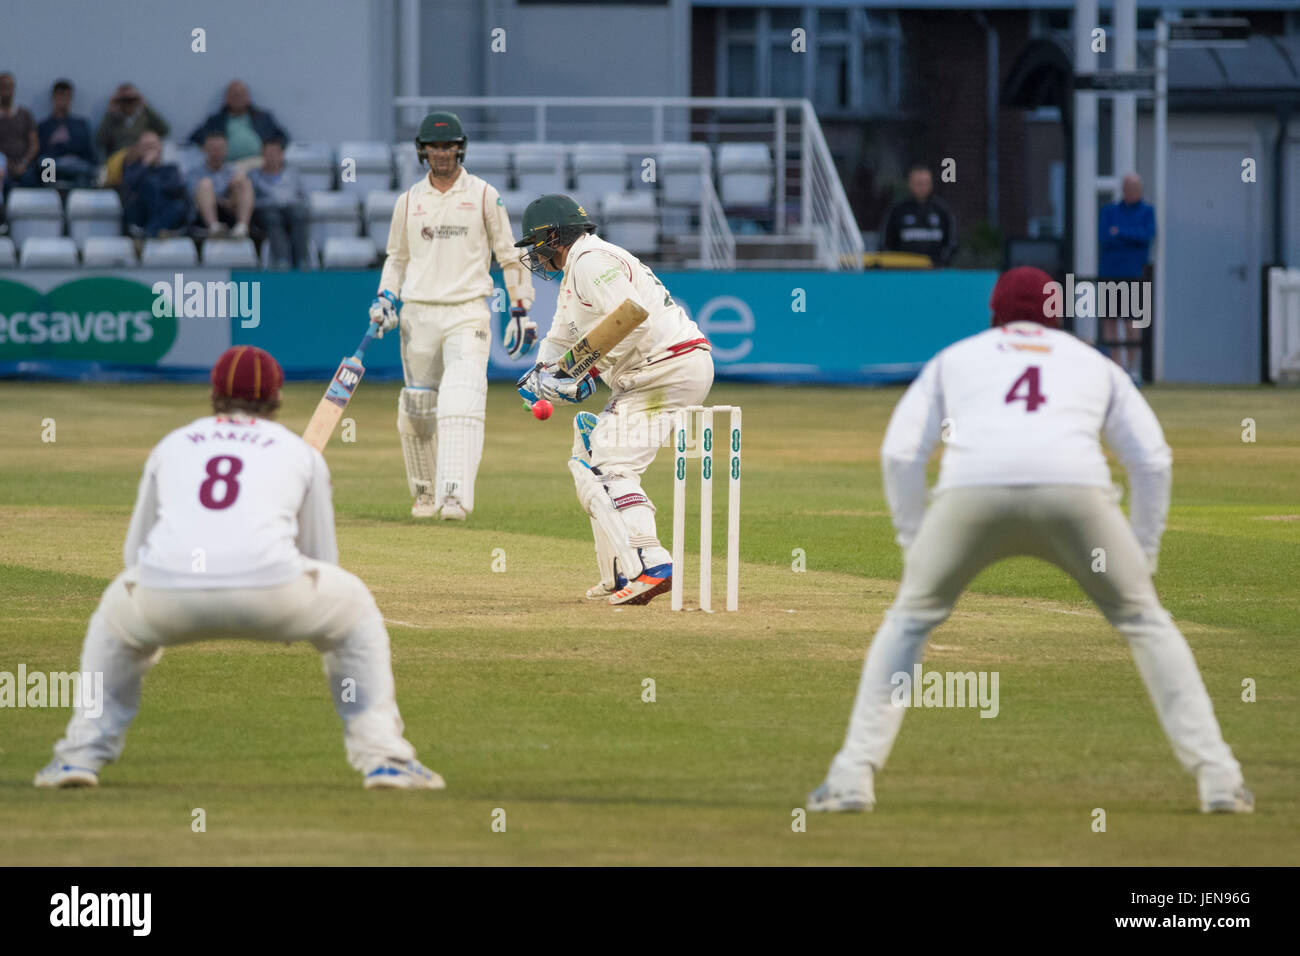 Northampton, UK. 26th June, 2017. Mark Cosgroce bats for Leicestershire during the Specsavers County Championship Stock Photo